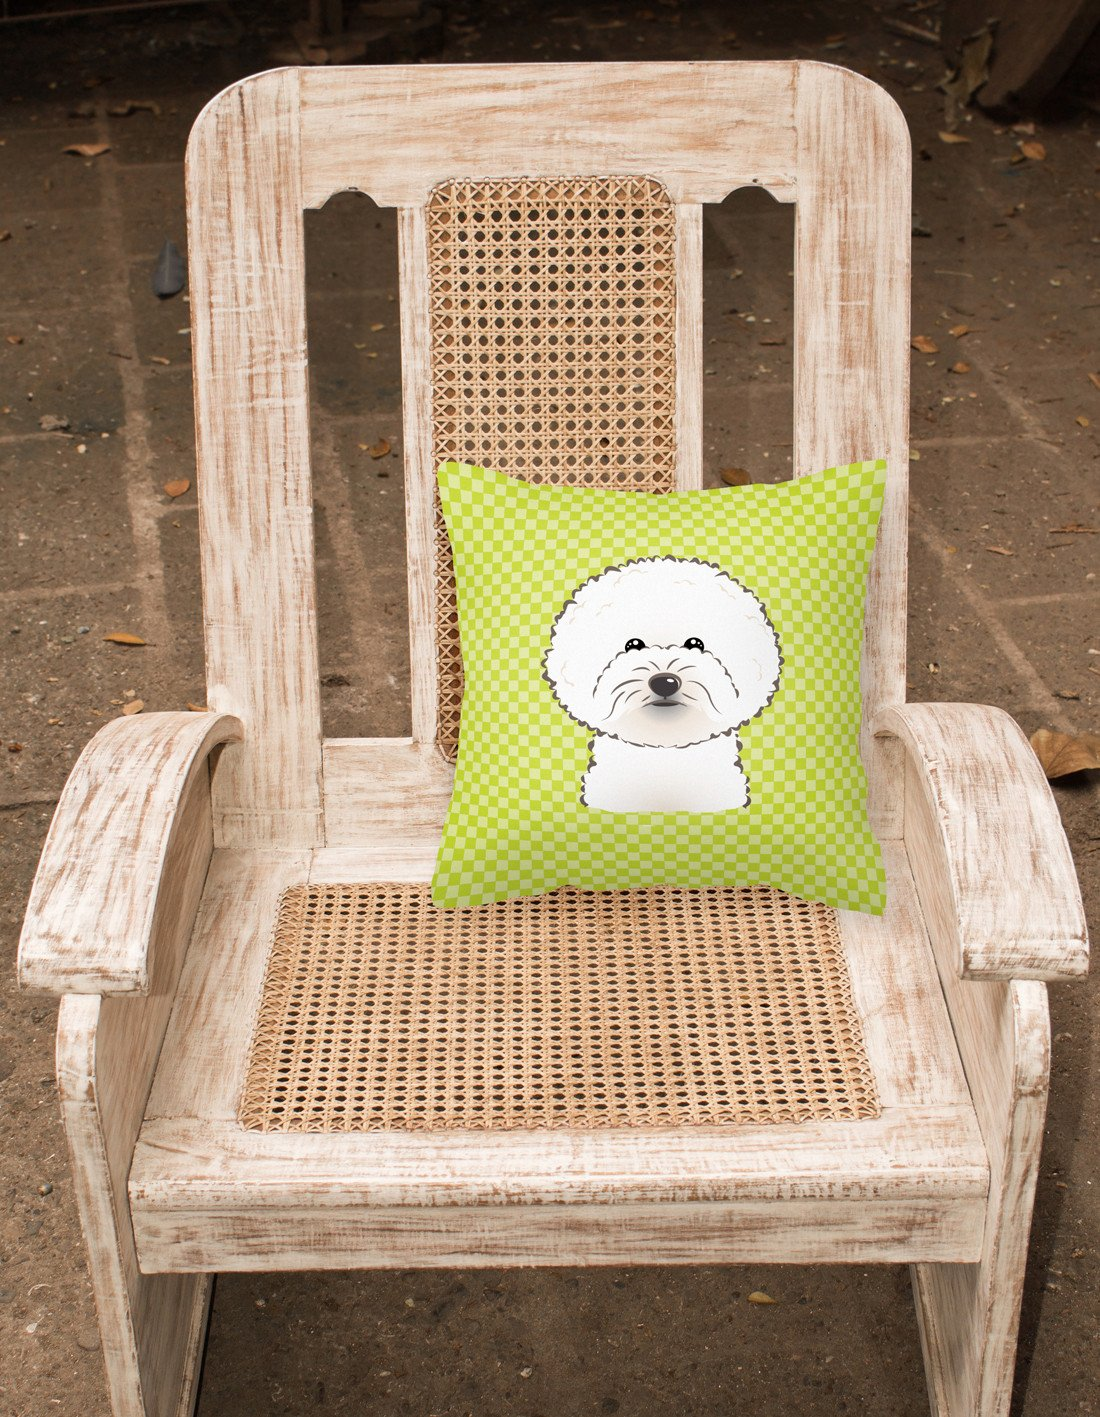 Checkerboard Lime Green Bichon Frise Canvas Fabric Decorative Pillow BB1279PW1414 - the-store.com